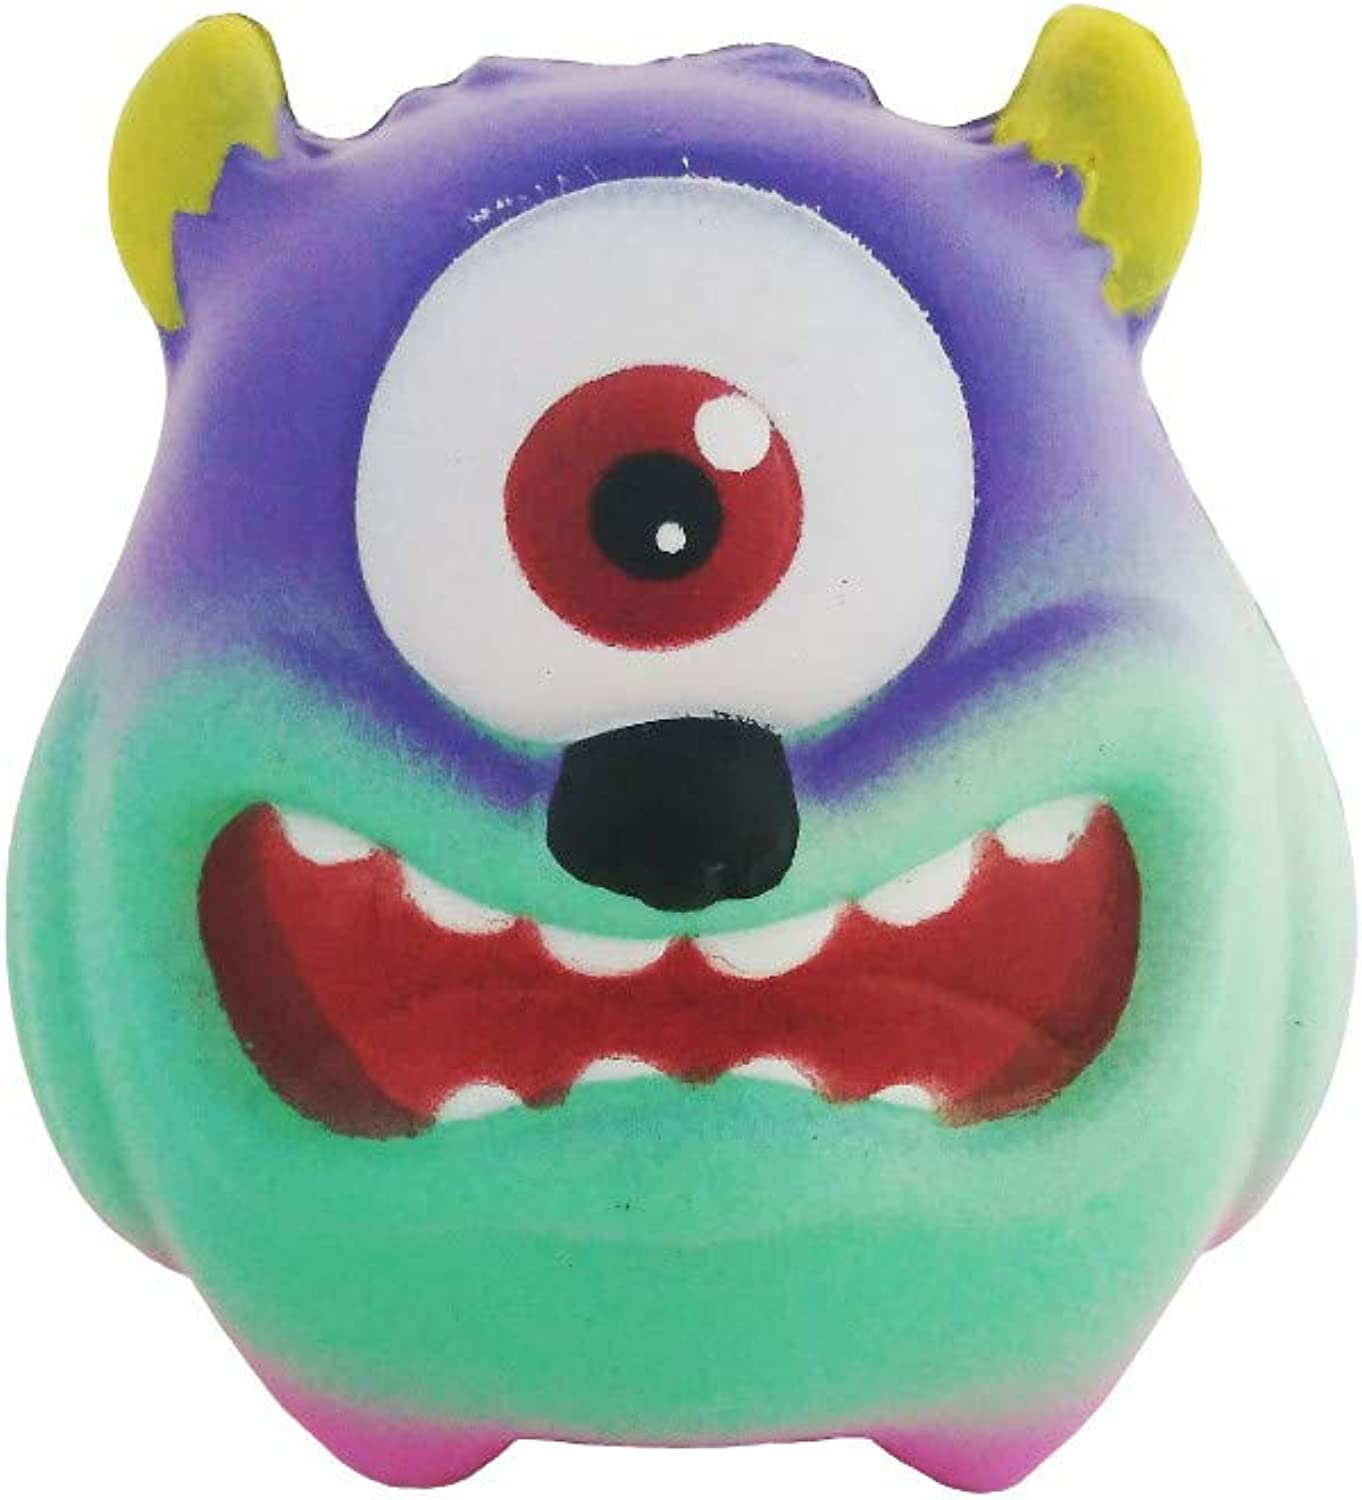 JIAHUADE New Slow Rebound Monocular Monster Squeeze Vent Toy Decorations Halloween Props